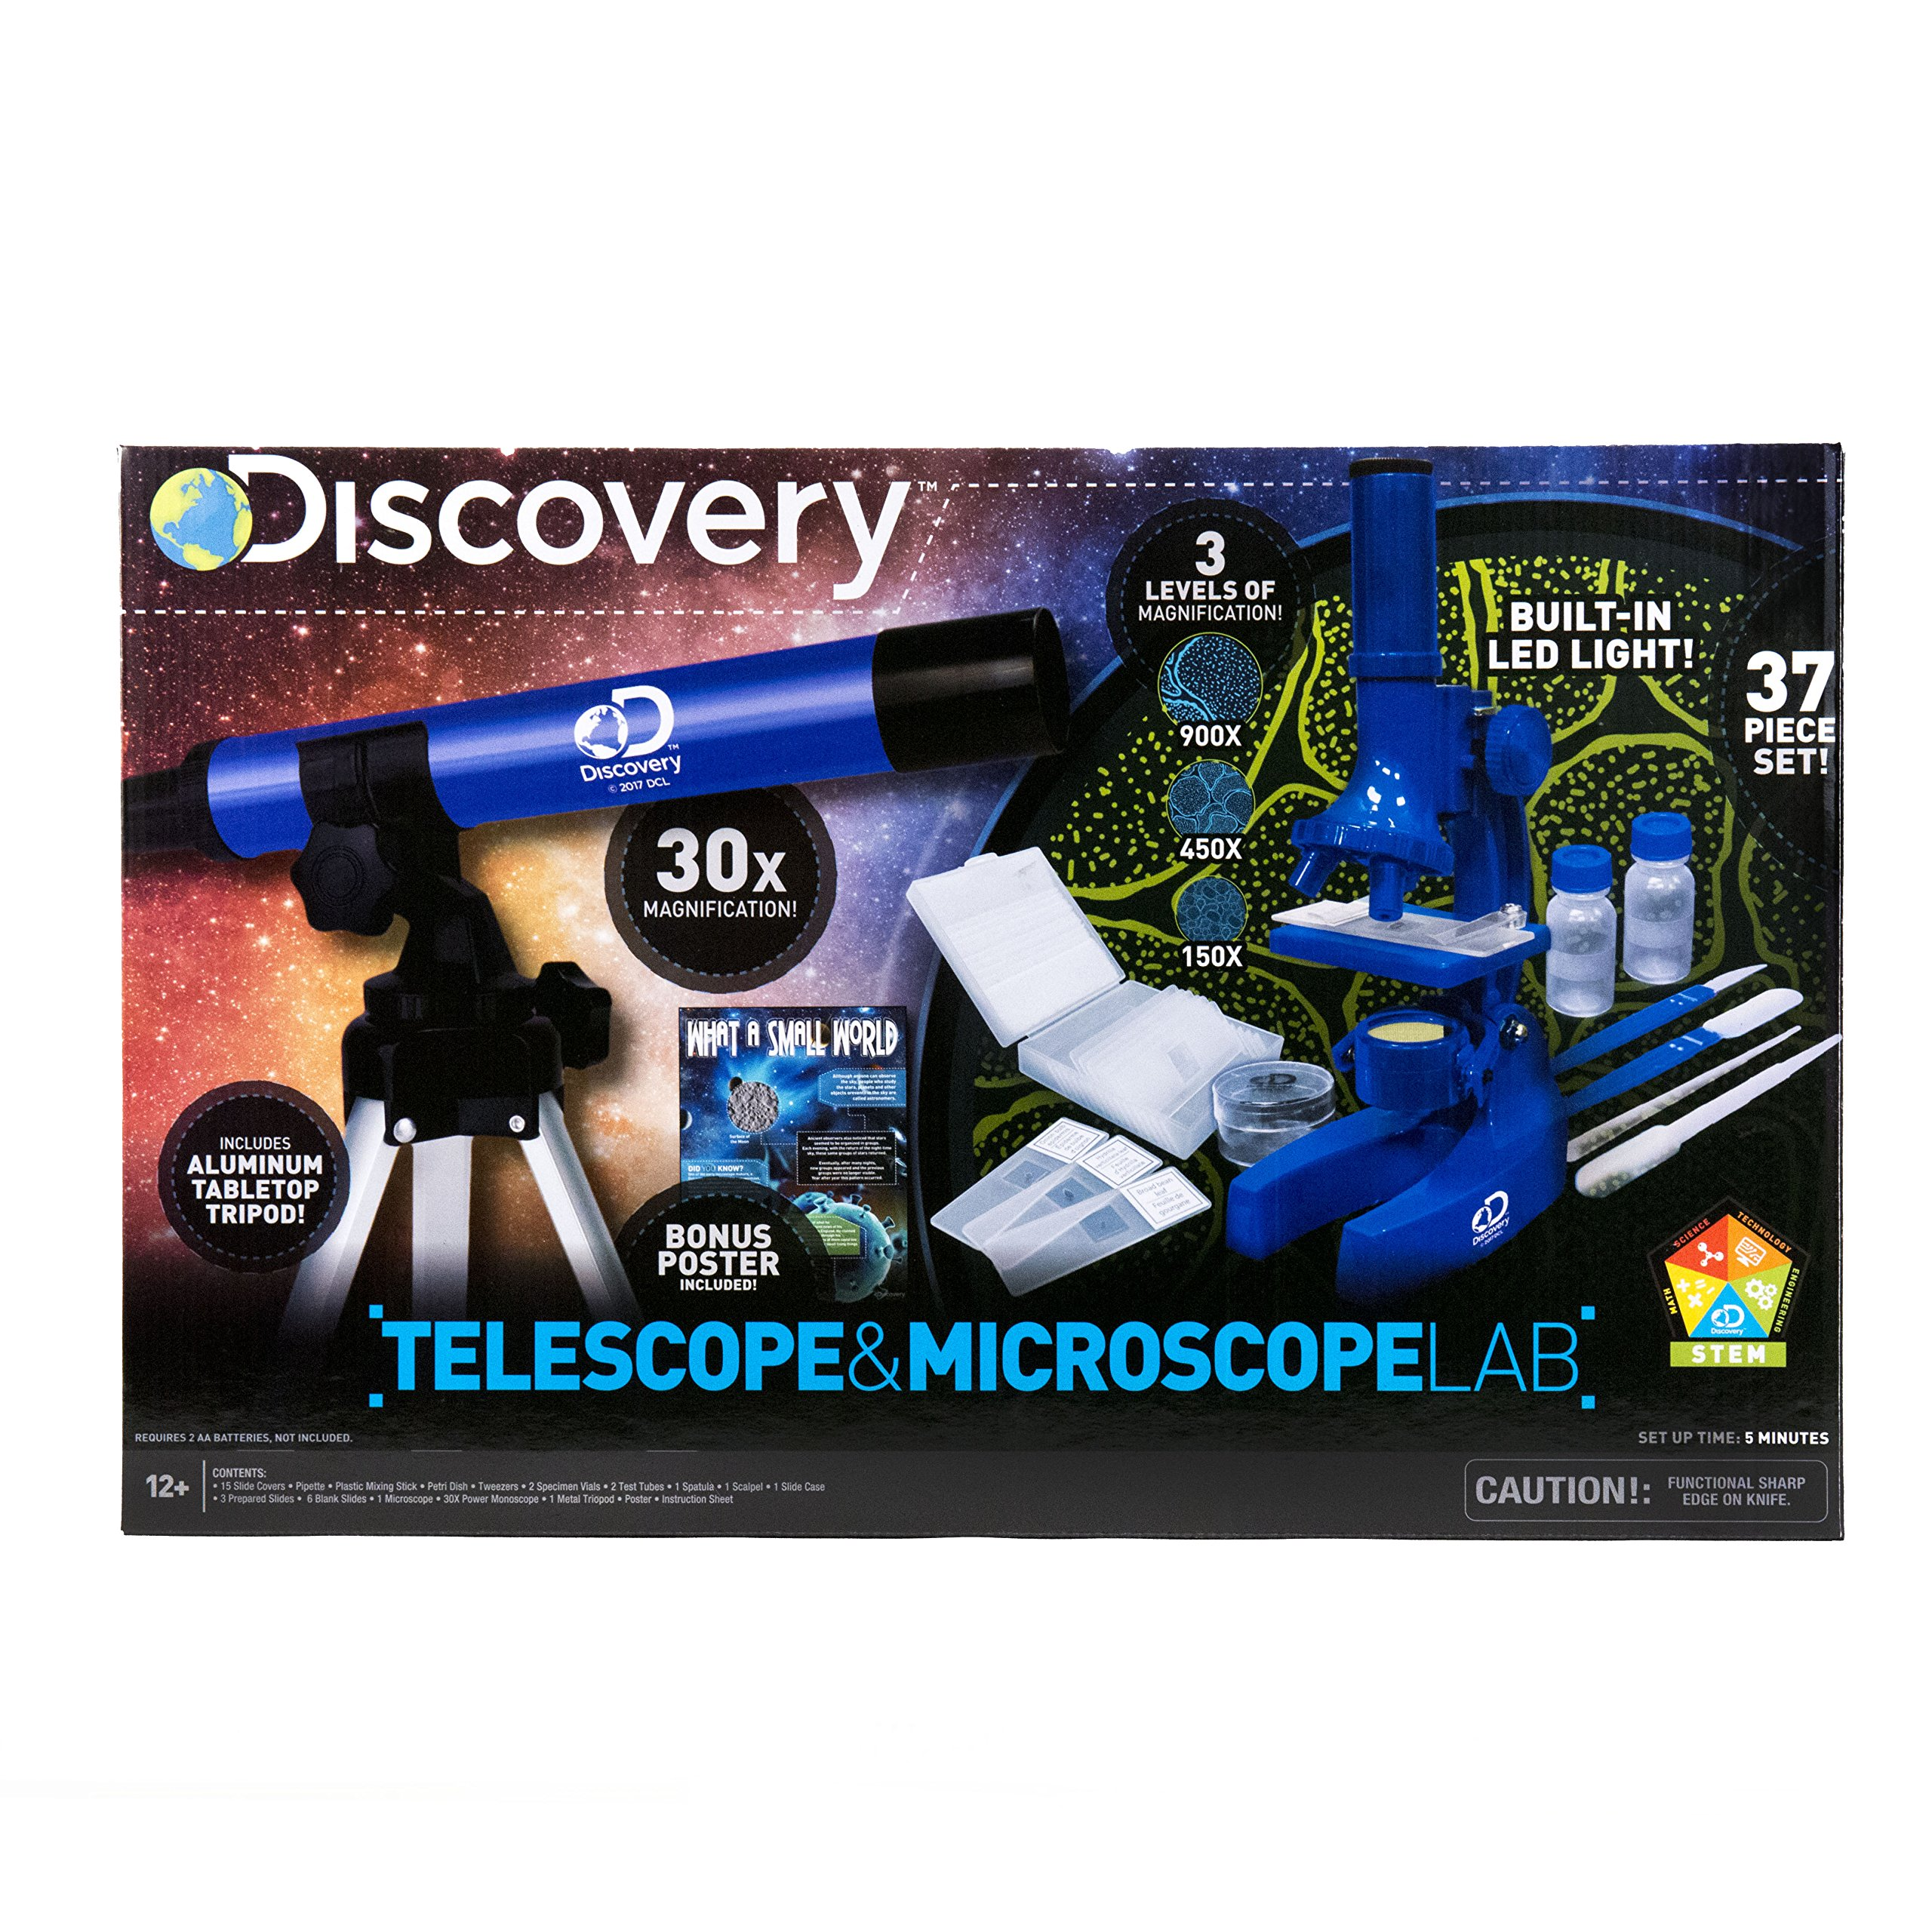 Discovery Telescope & Microscope Lab by Horizon Group USA, Great Stem Science Kit, Includes Telescope with Tripod & 900X Magnifying Microscope by Discovery